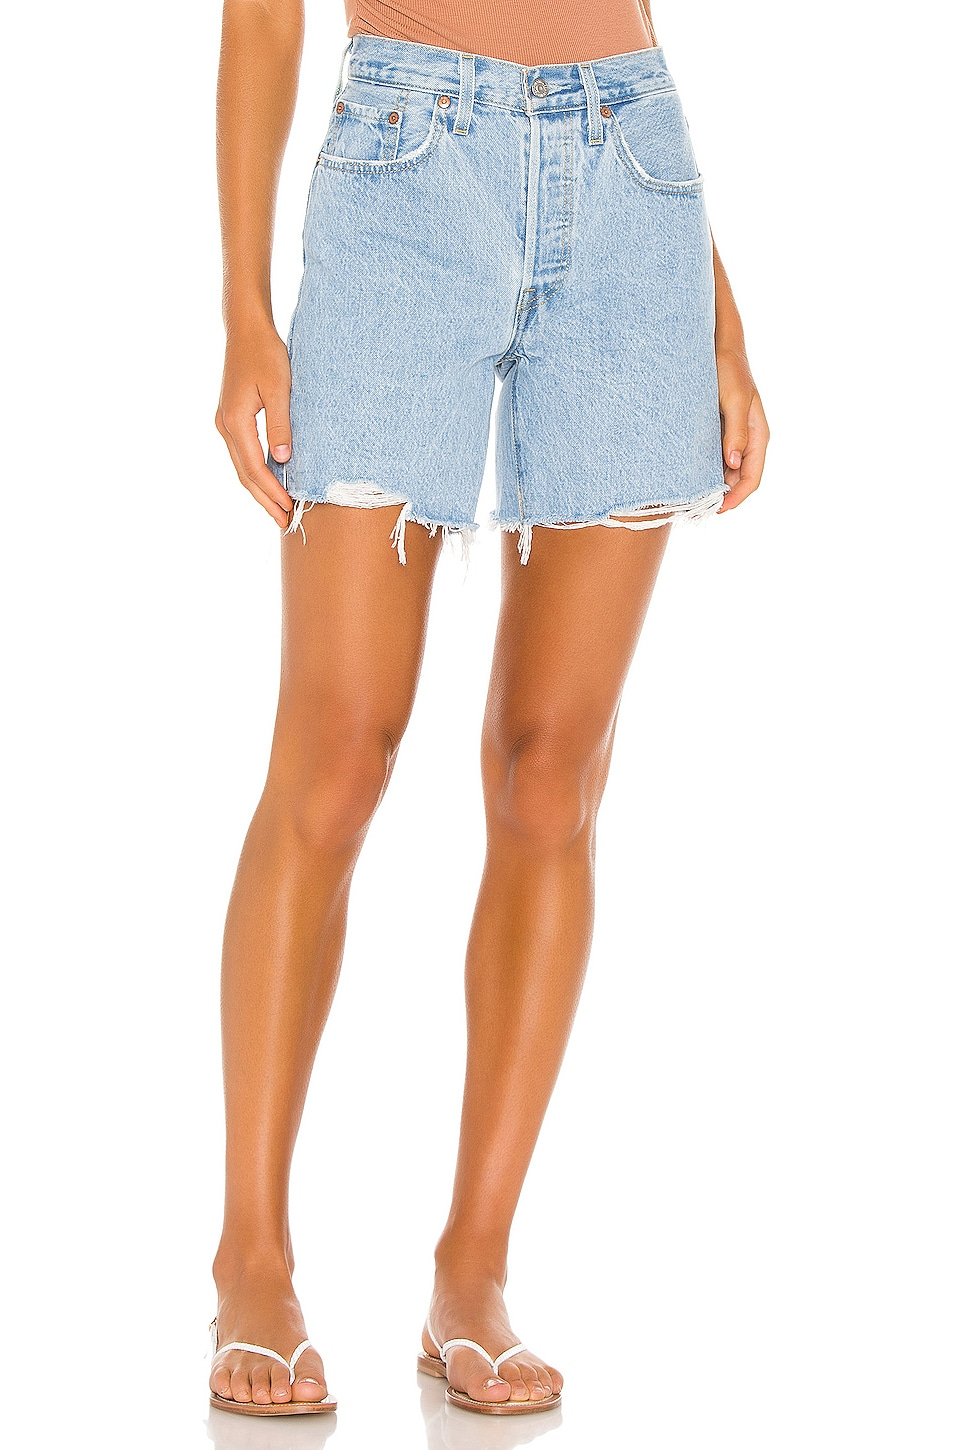 501 Mid Thigh Short             LEVI'S                                                                                                       CA$ 94.58 25